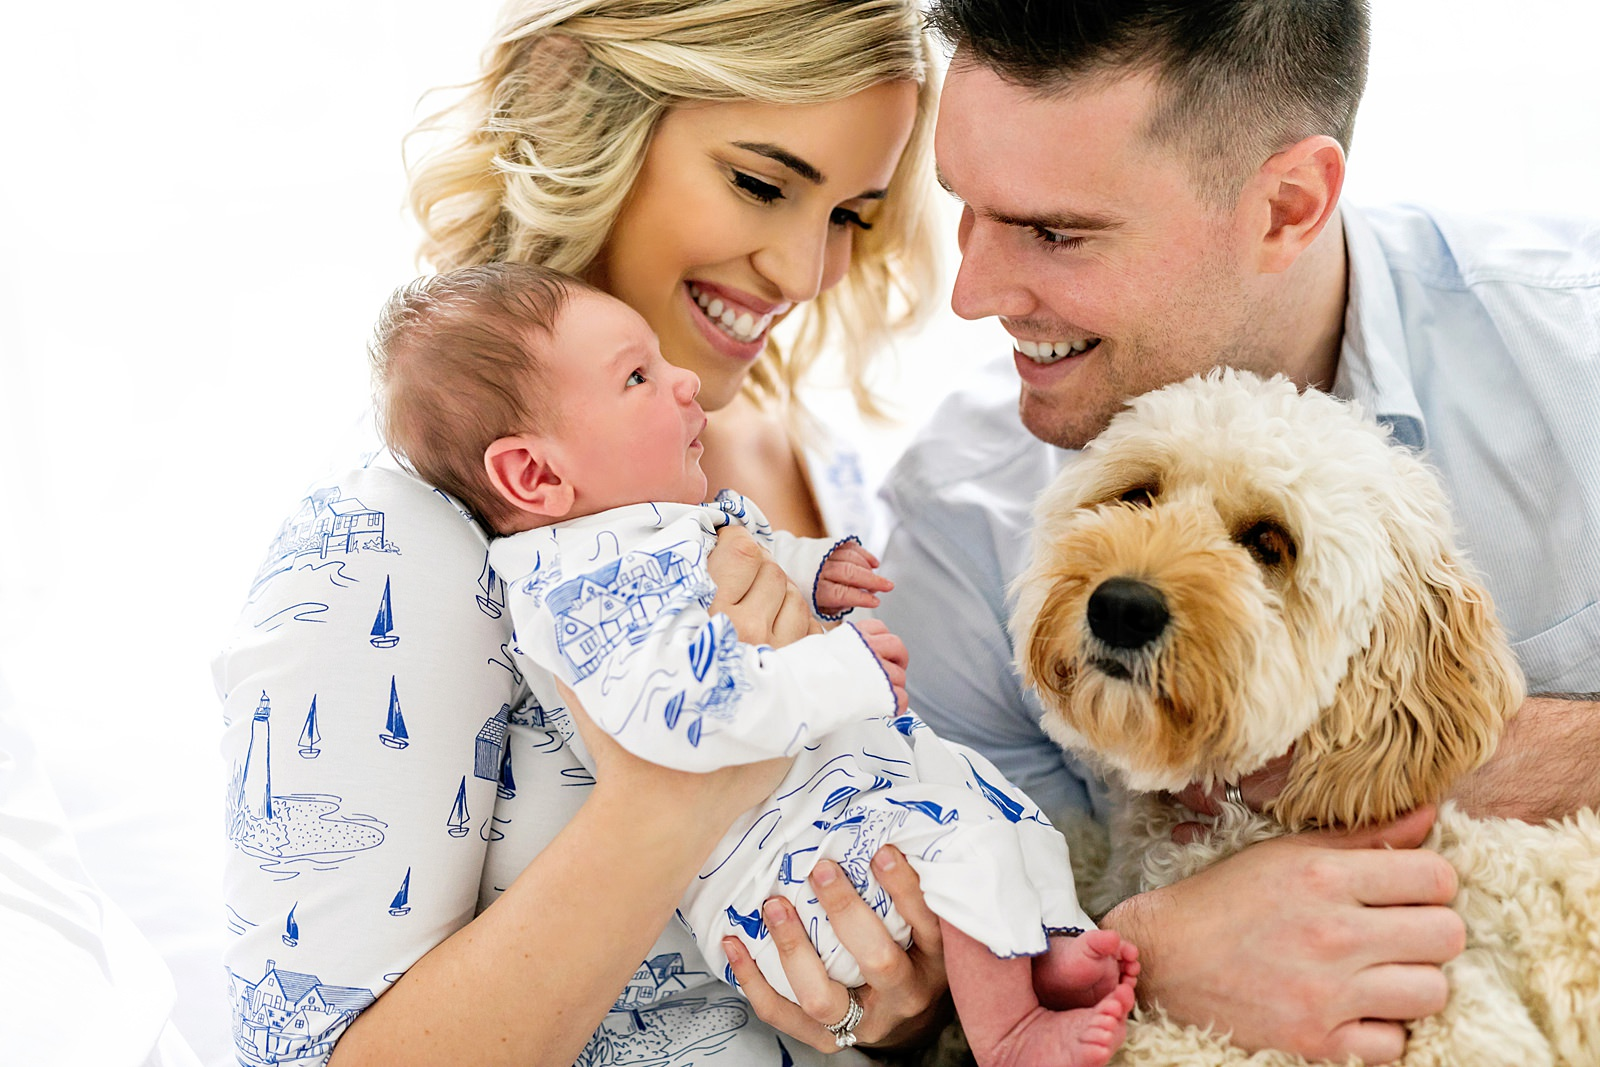 family of four with newborn and dog